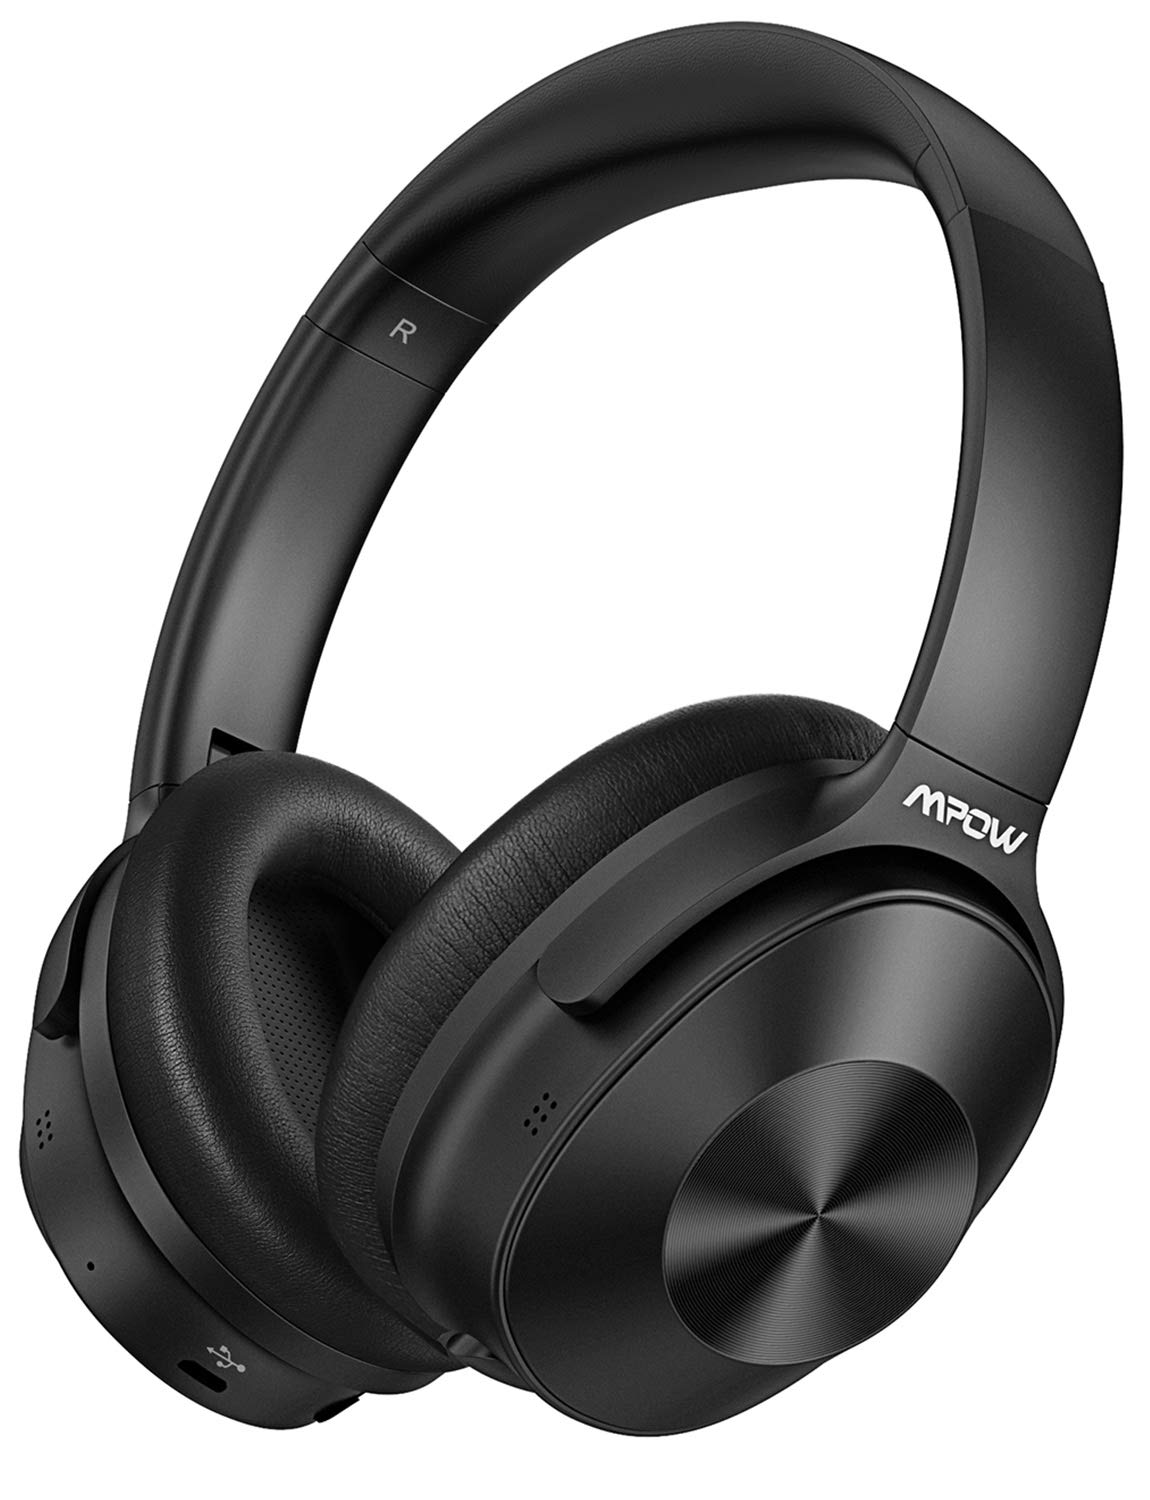 Mpow Hybrid Active Noise Cancelling Headphones, Bluetooth Headphones Over Ear [2019 Version] with Hi-Fi Deep Bass, CVC 6.0 Microphone, Soft Protein Earpads, Wireless Headphones for TV Travel Work by Mpow